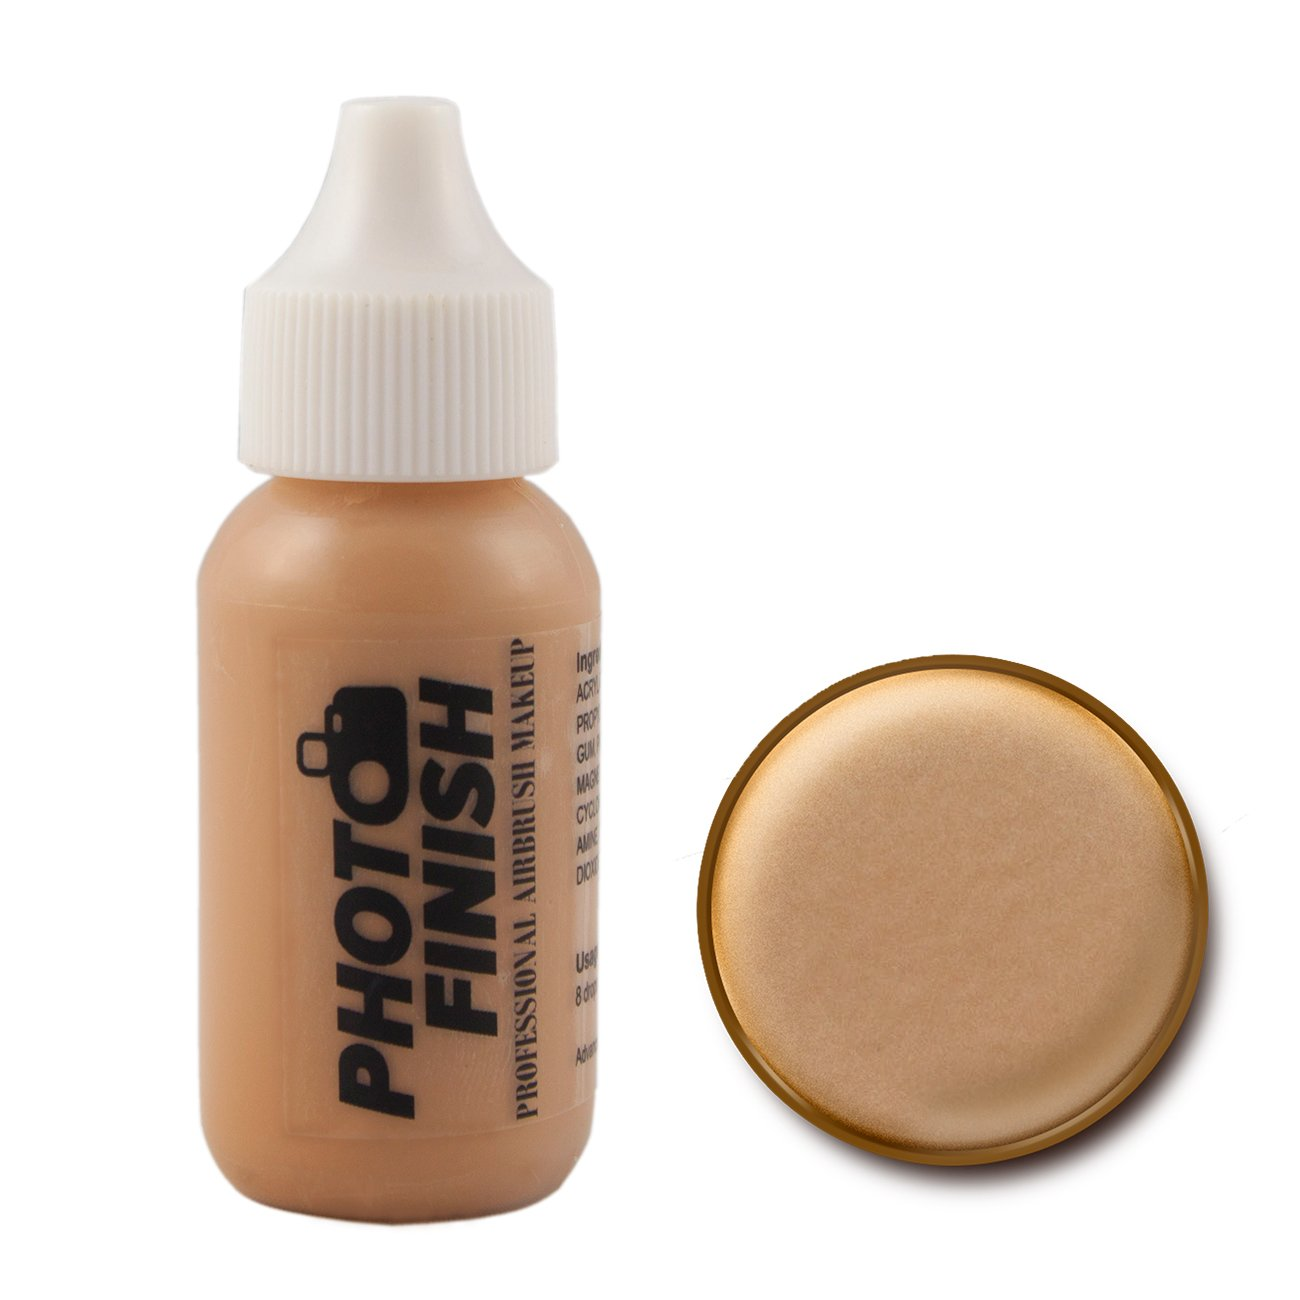 Photo Finish Airbrush Makeup - Foundation-1.0 Oz Cosmetic Face- Choose Color (Medium Beige Matte)